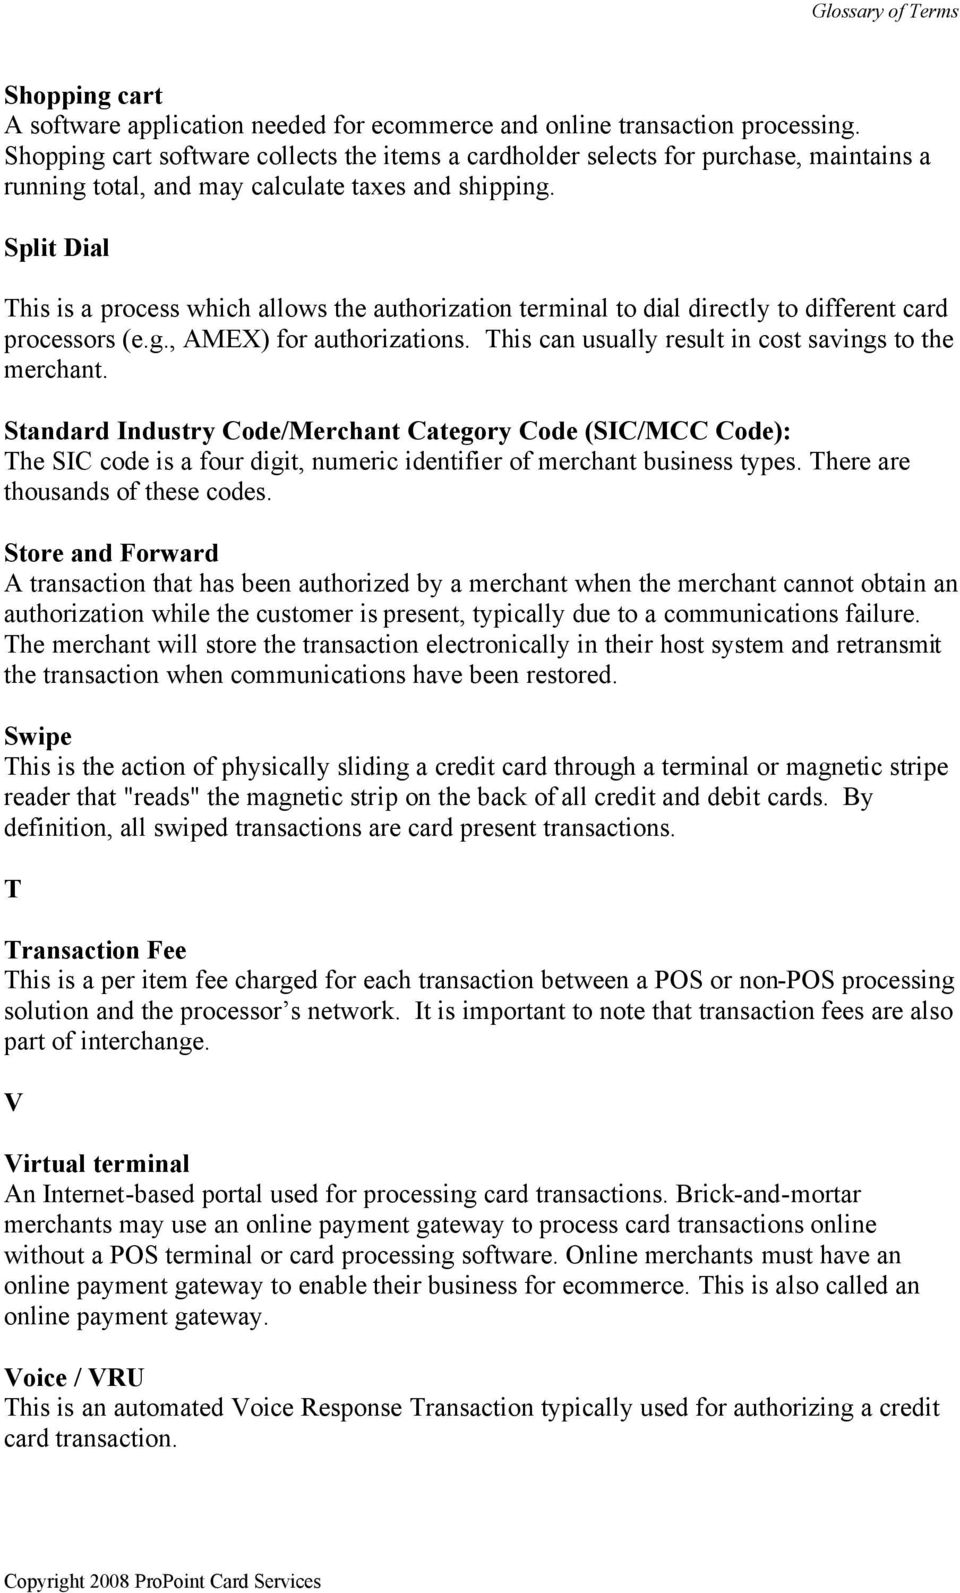 credit card processing glossary of terms - pdf